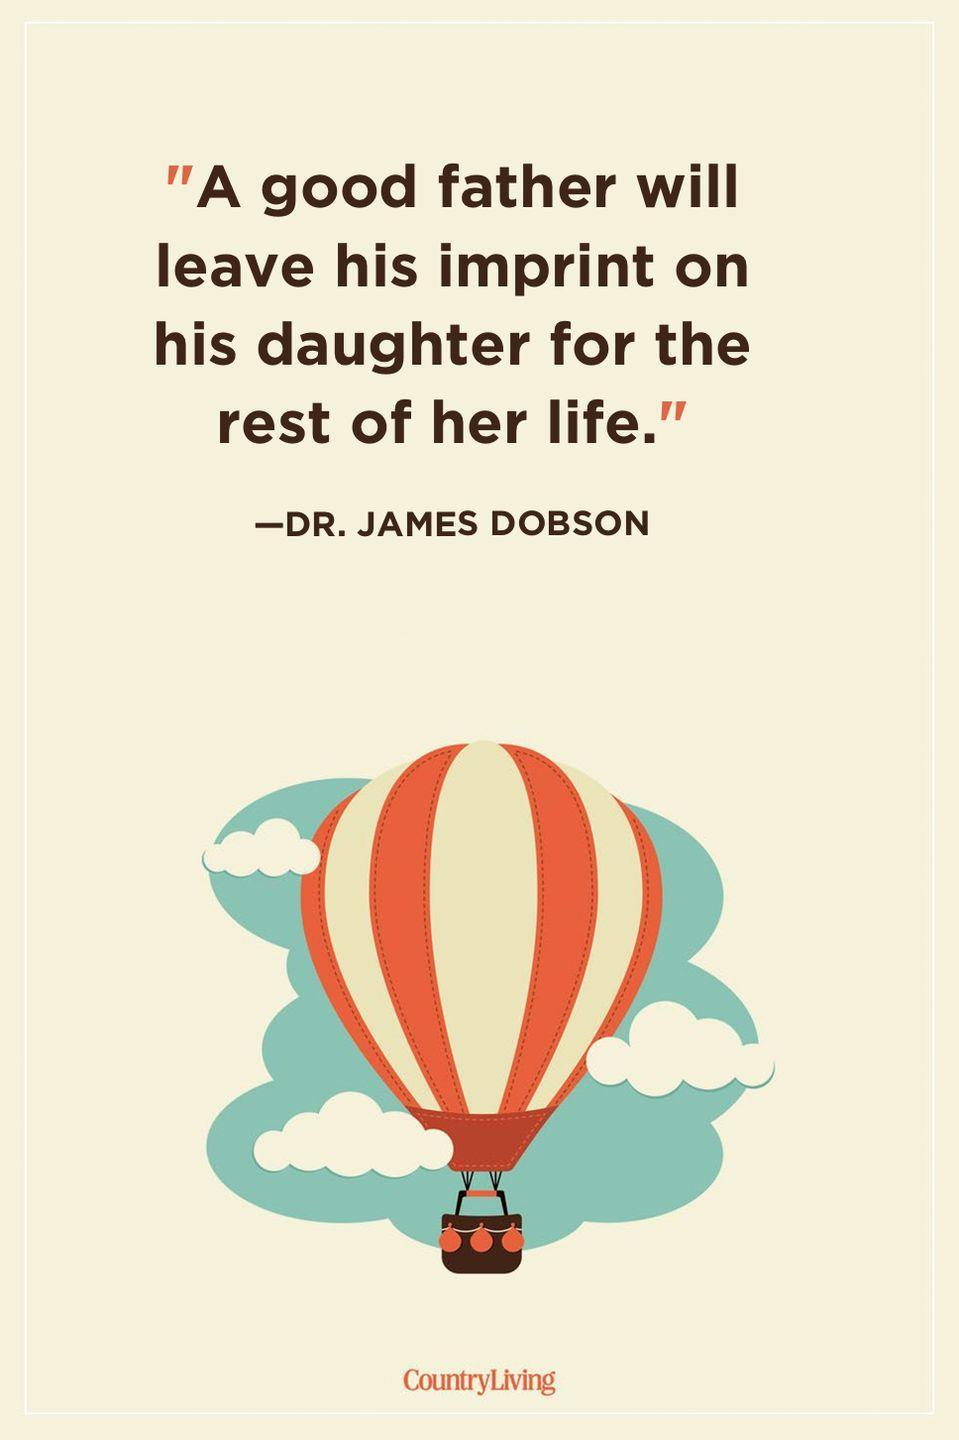 "<p>""A good father will leave his imprint on his daughter for the rest of her life.""</p>"